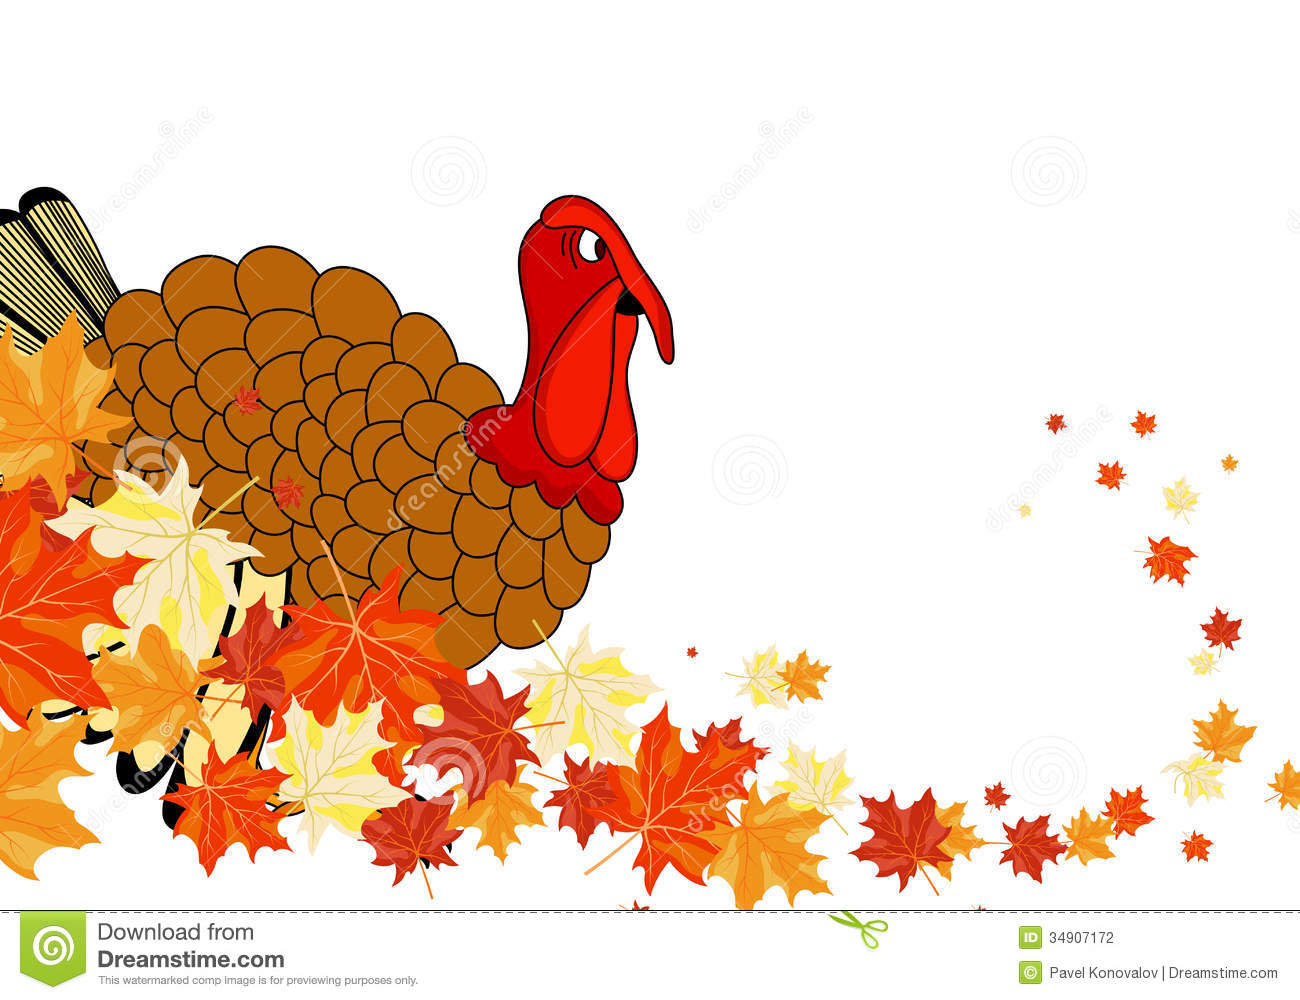 Autumn Falling Leaves Wallpaper Thanksgiving Day Stock Vector Image Of Banner